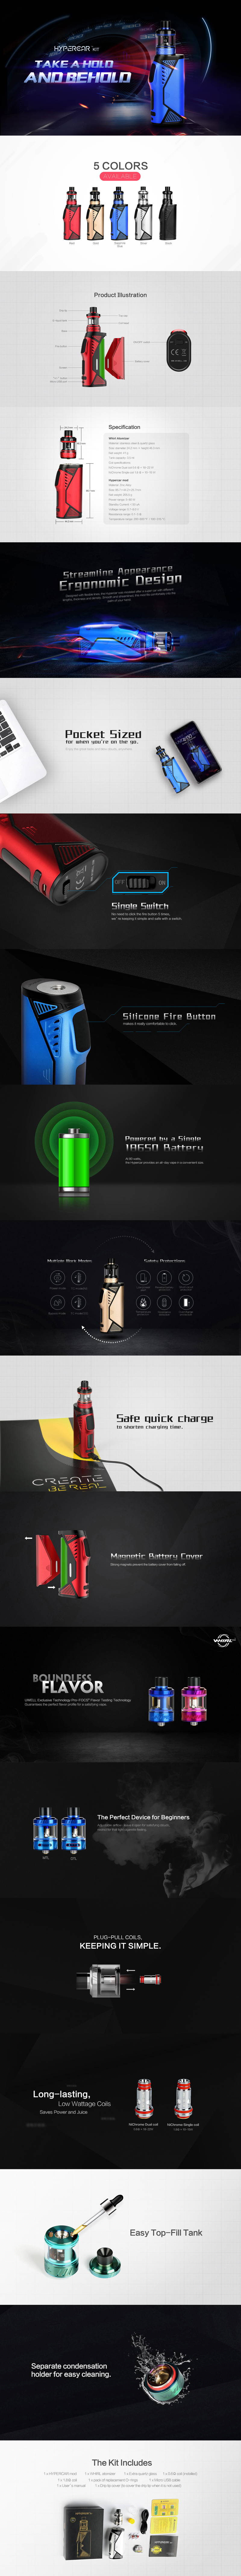 Uwell tanks and coils hypercar